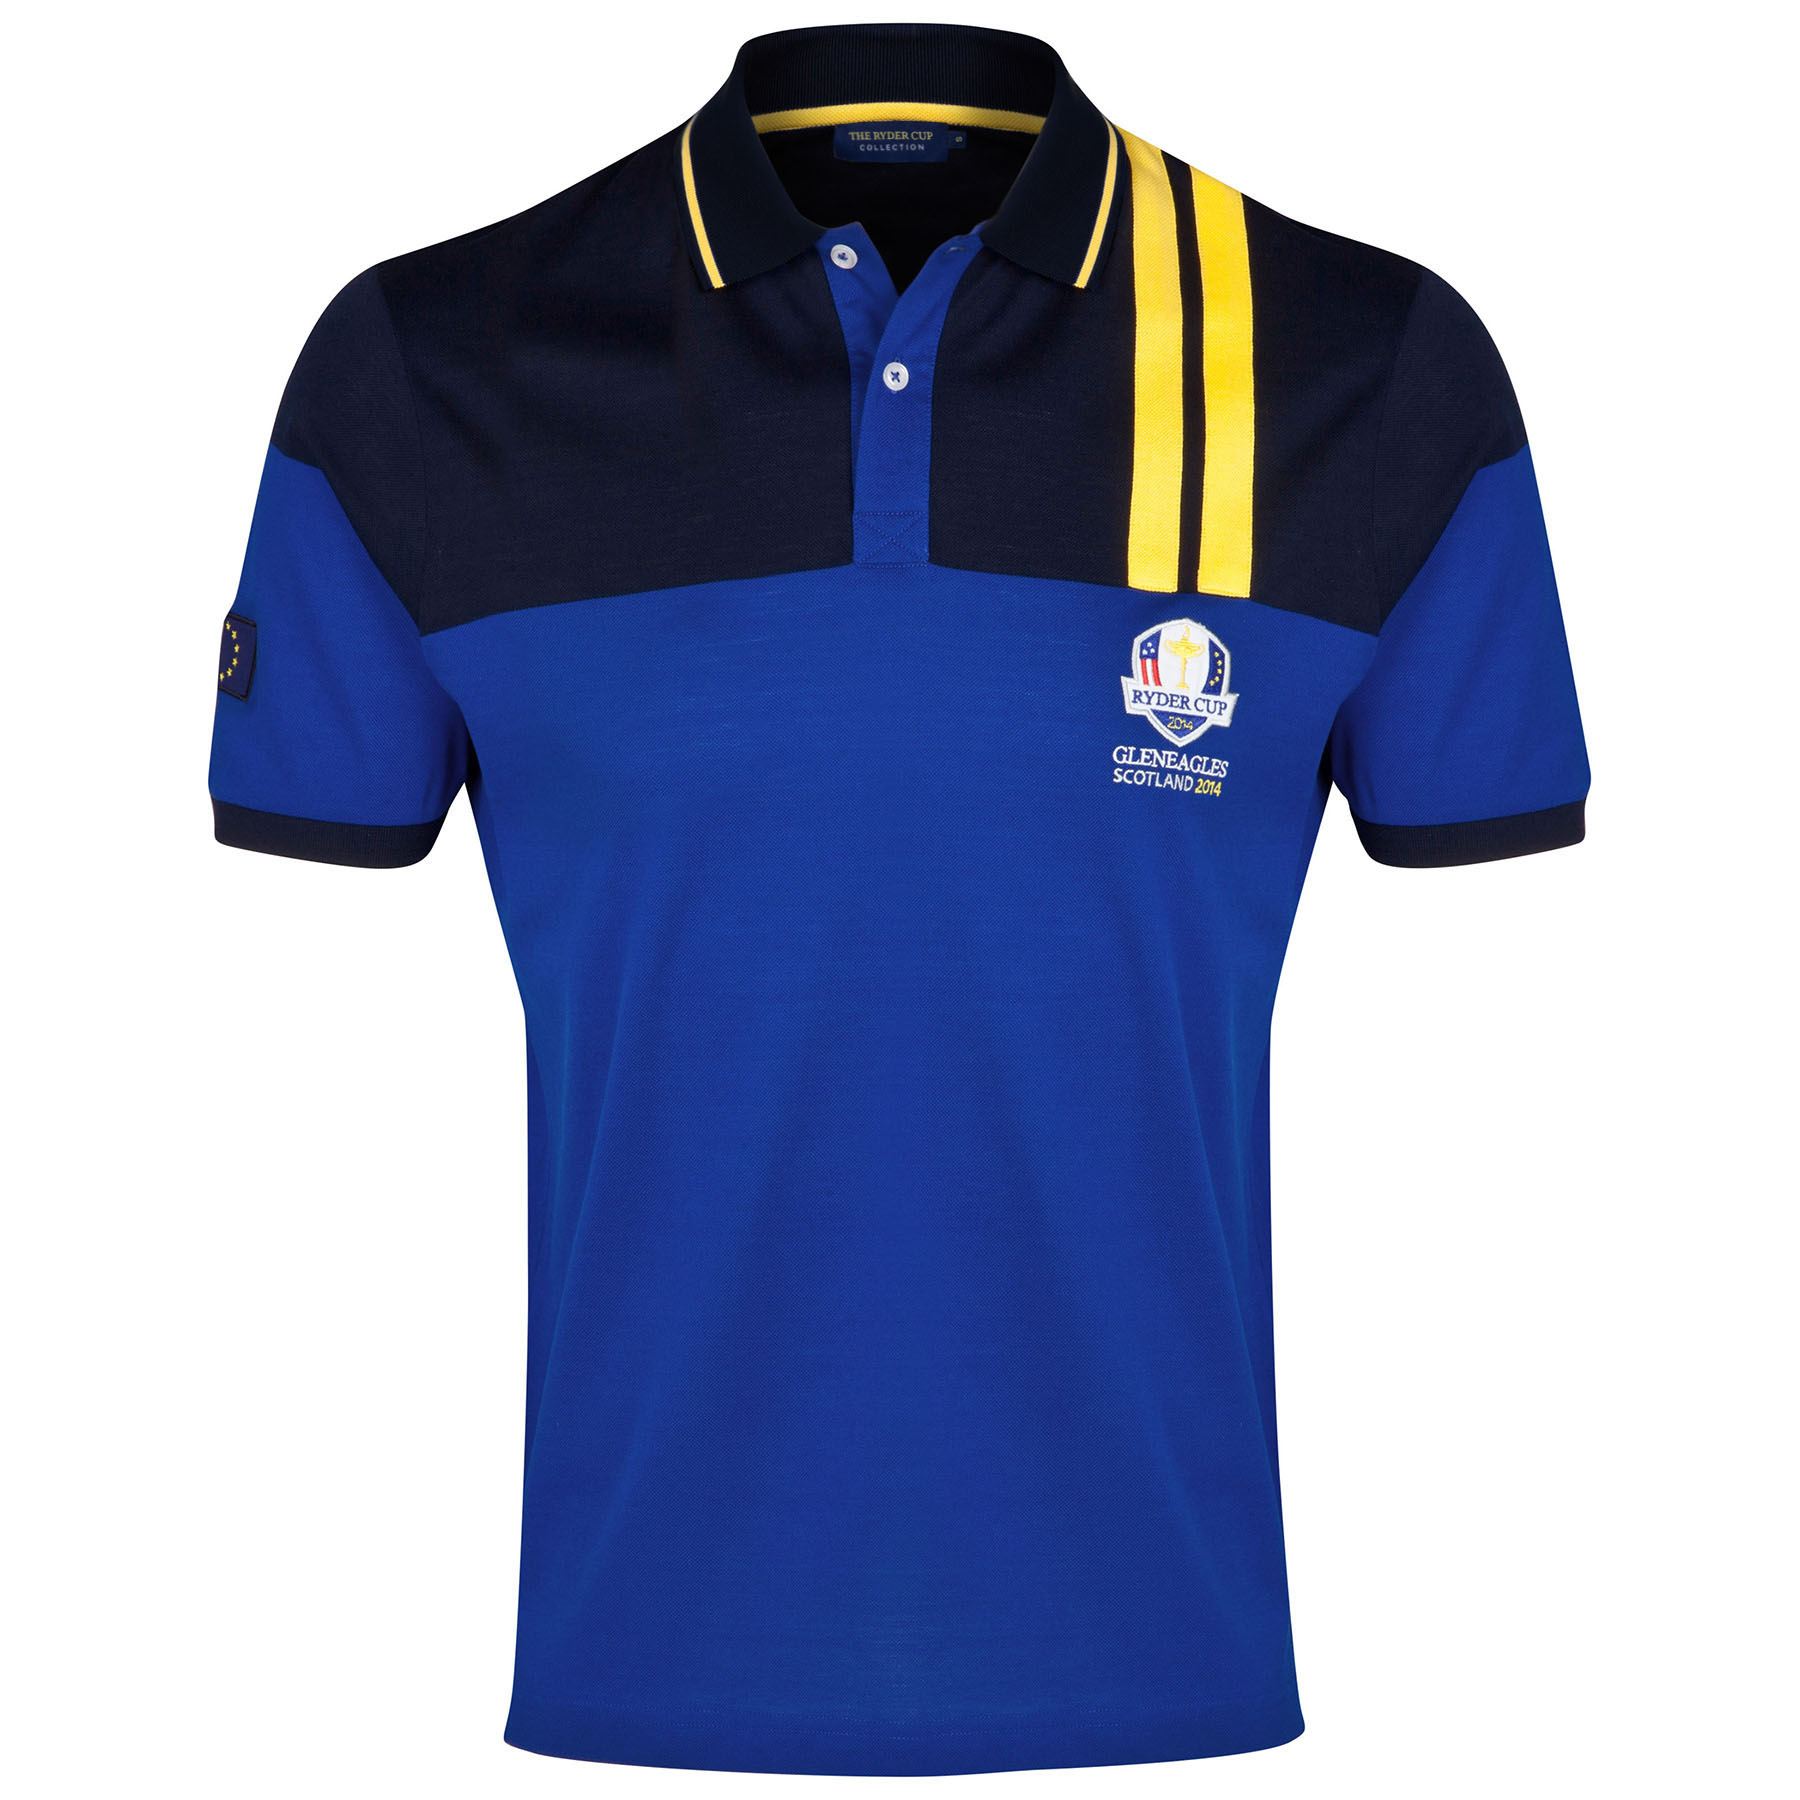 The 2014 Ryder Cup Fan Range Polo - Mens